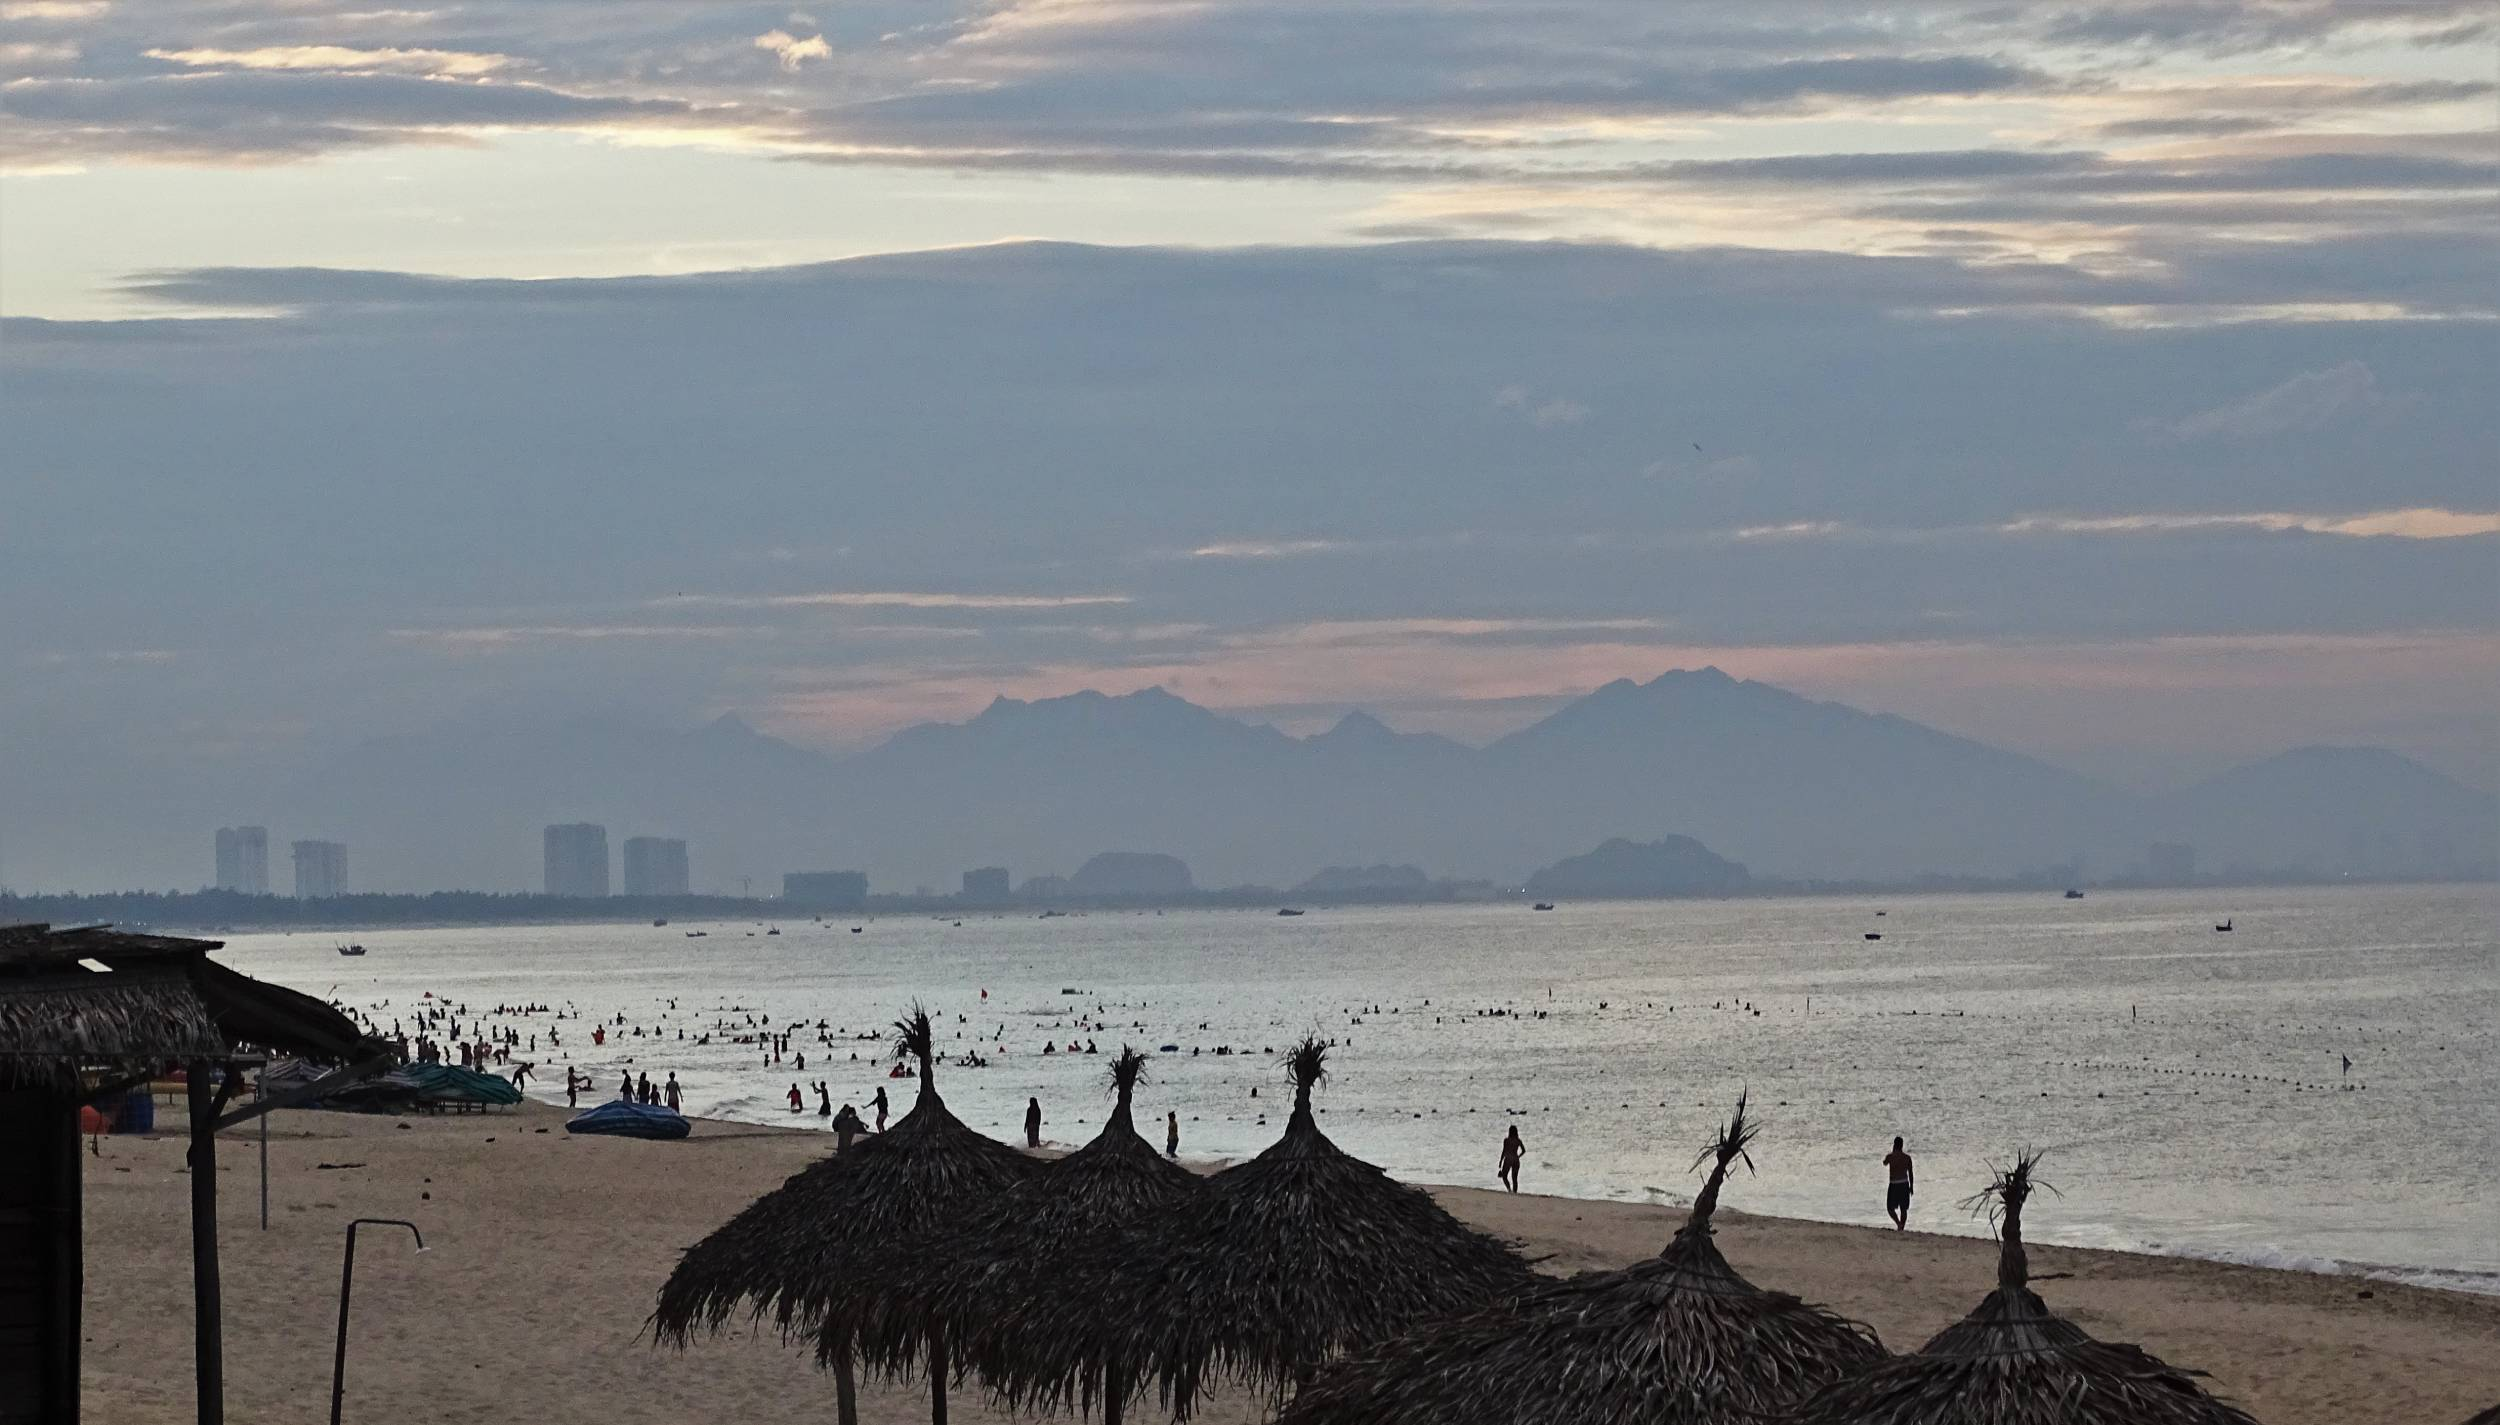 The view from An Bang beach at the sea, Da Nang city and the mountains on the horizon